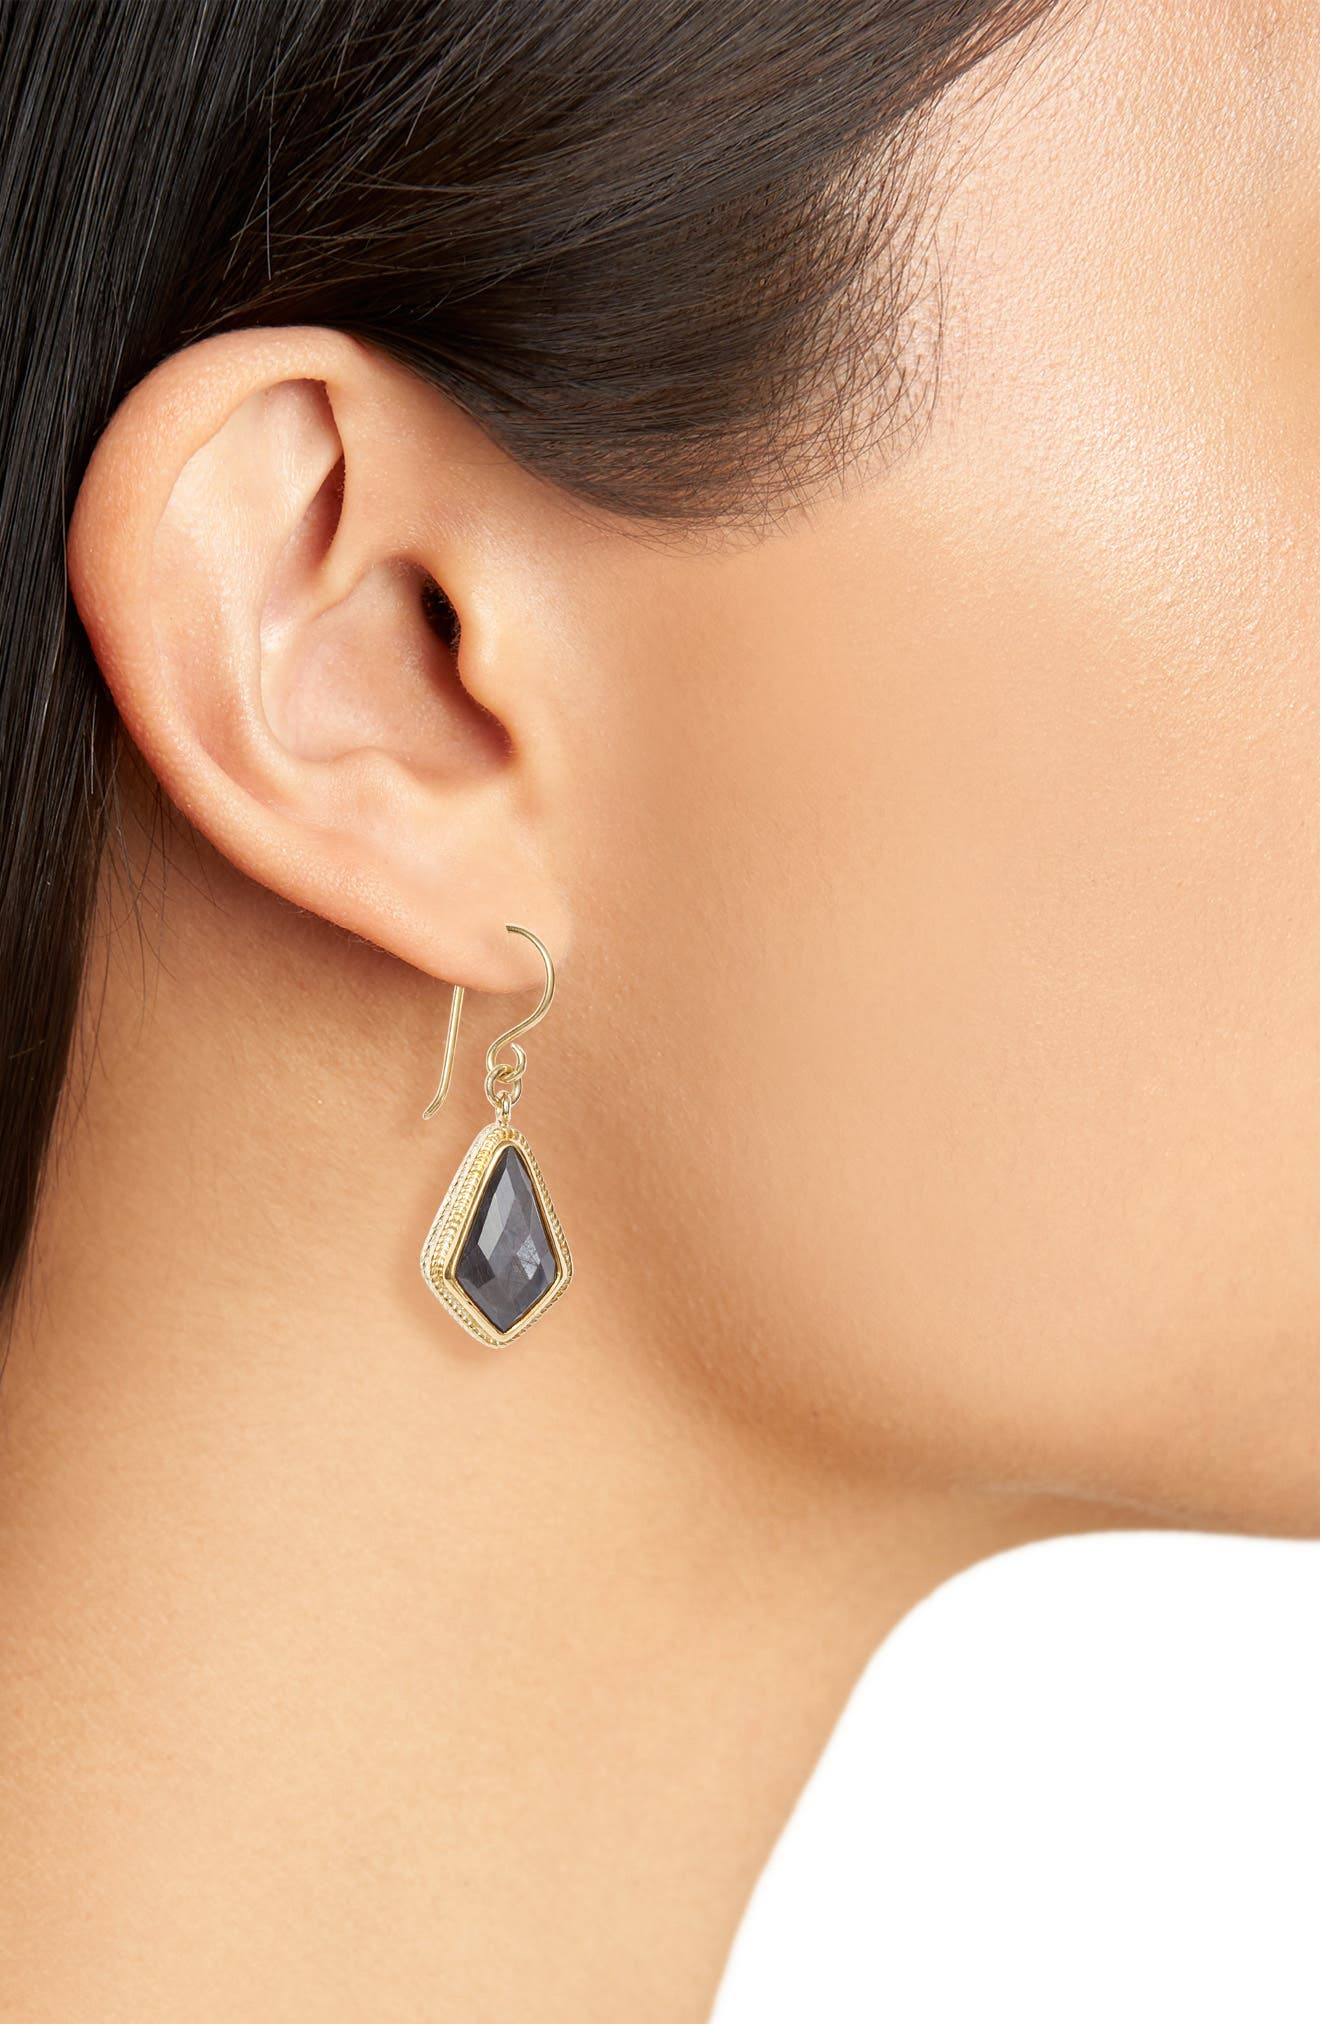 Grey Sapphire Kite Earrings,                             Alternate thumbnail 2, color,                             020